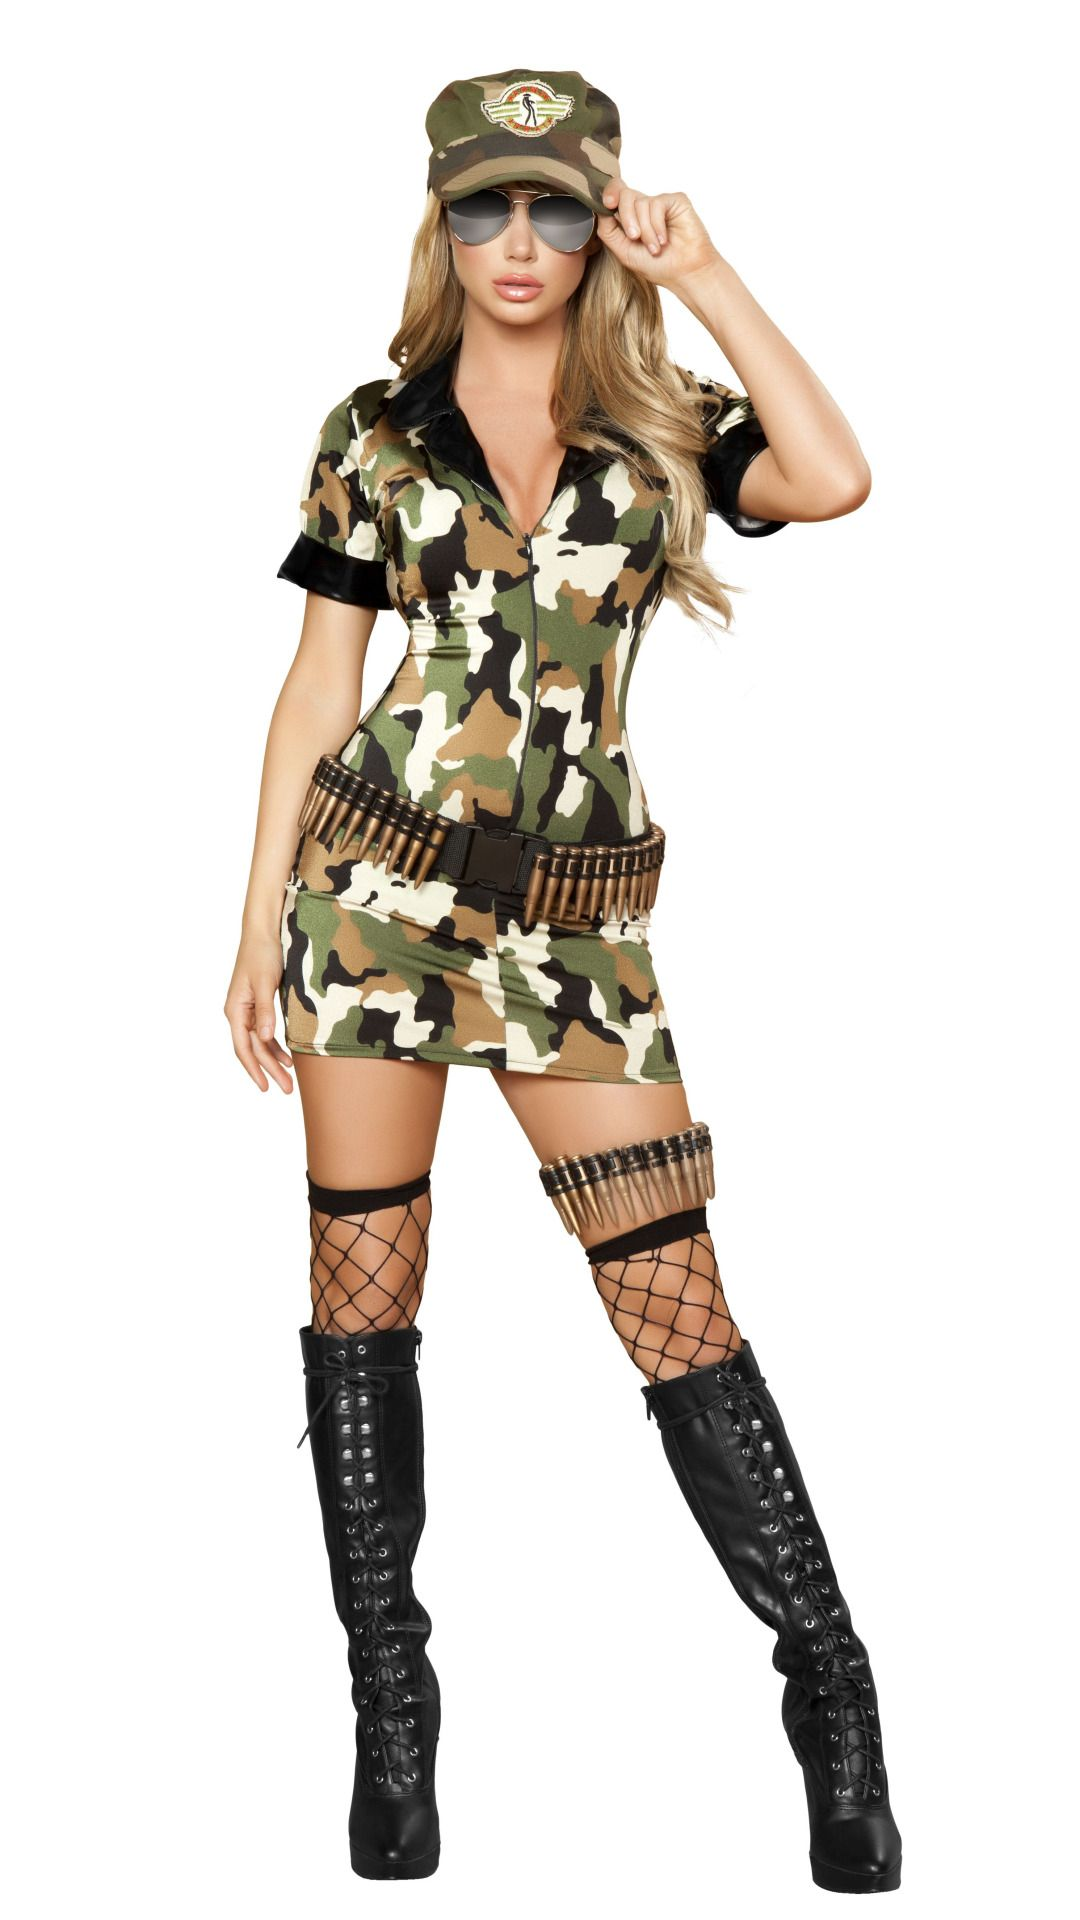 473541c8 Sexy Womens Army Costume, 3 pcs Click picture TWICE to see details &  pricing #halloween #costume #sexycostume #thesexiestlingerie #soldier